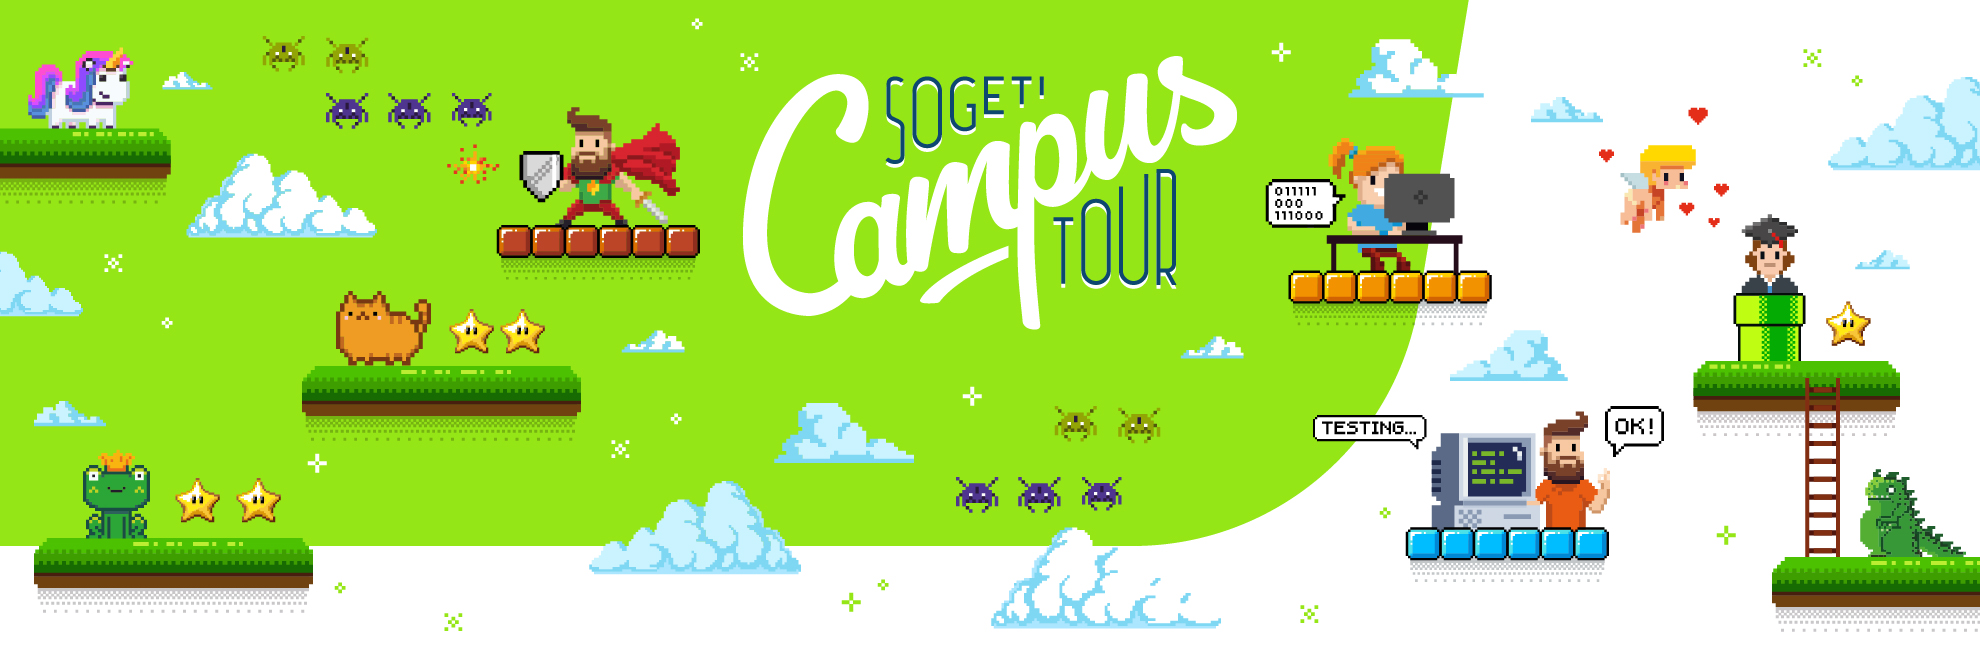 Sogeti Campus Tour